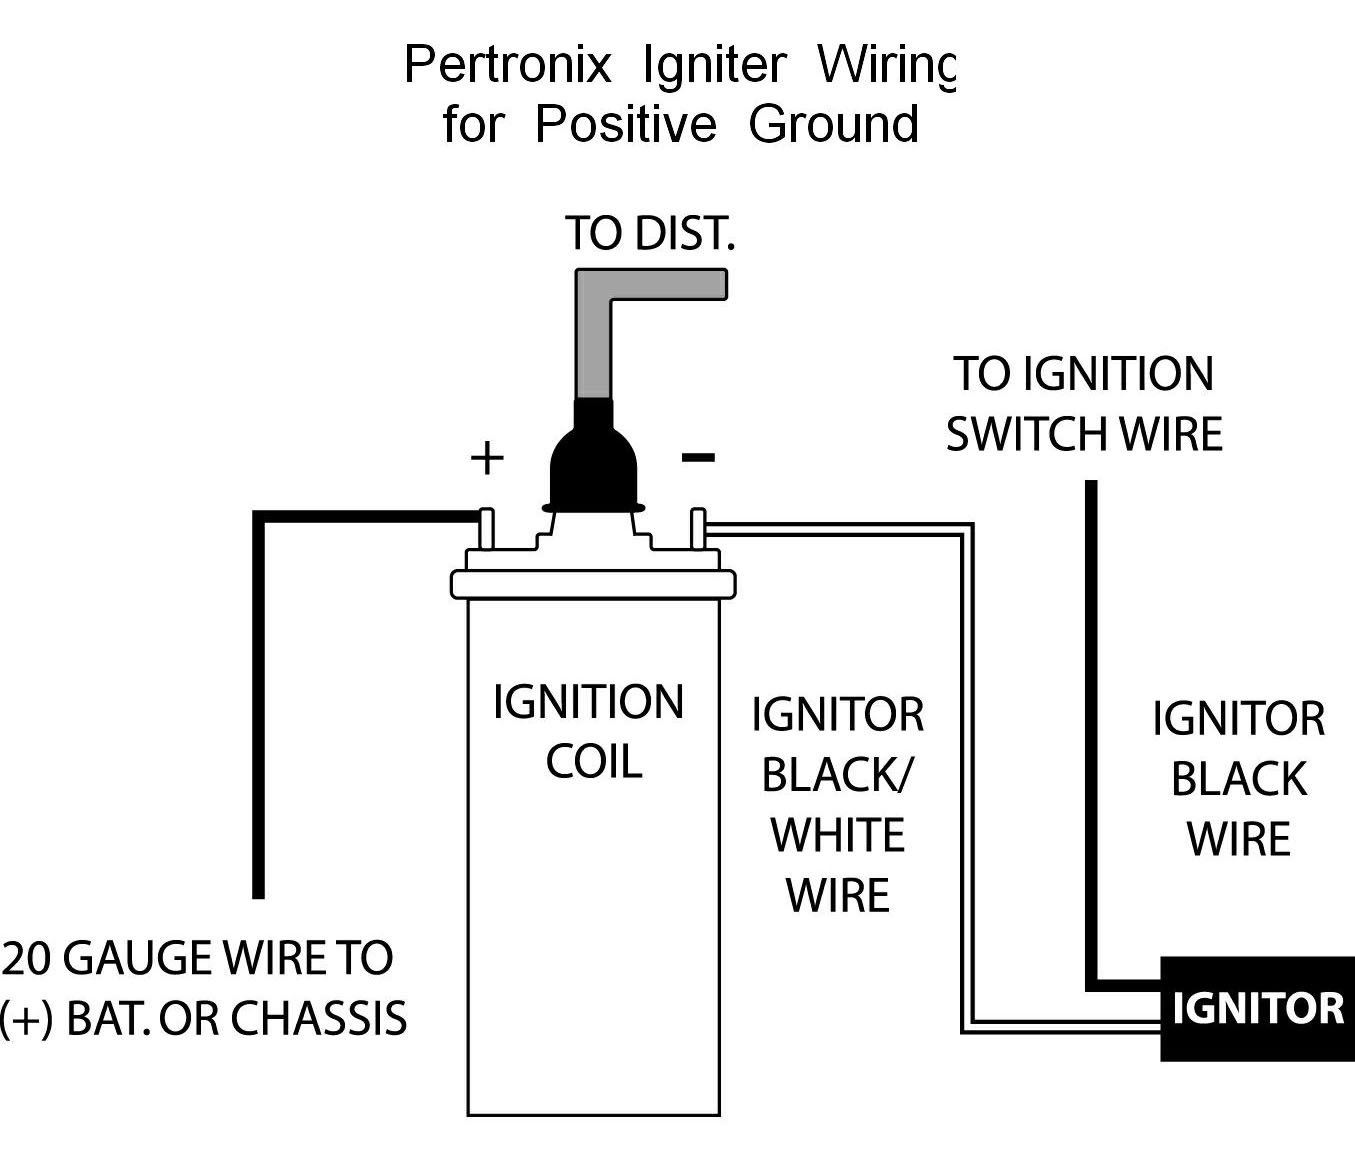 Grounded Schematic Wiring Diagram Libraries Needed For Adding Outlets In Old Homewiringdiagramjpg Grounding Wire Trusted Onlinegrounding Completed Diagrams A Transformer